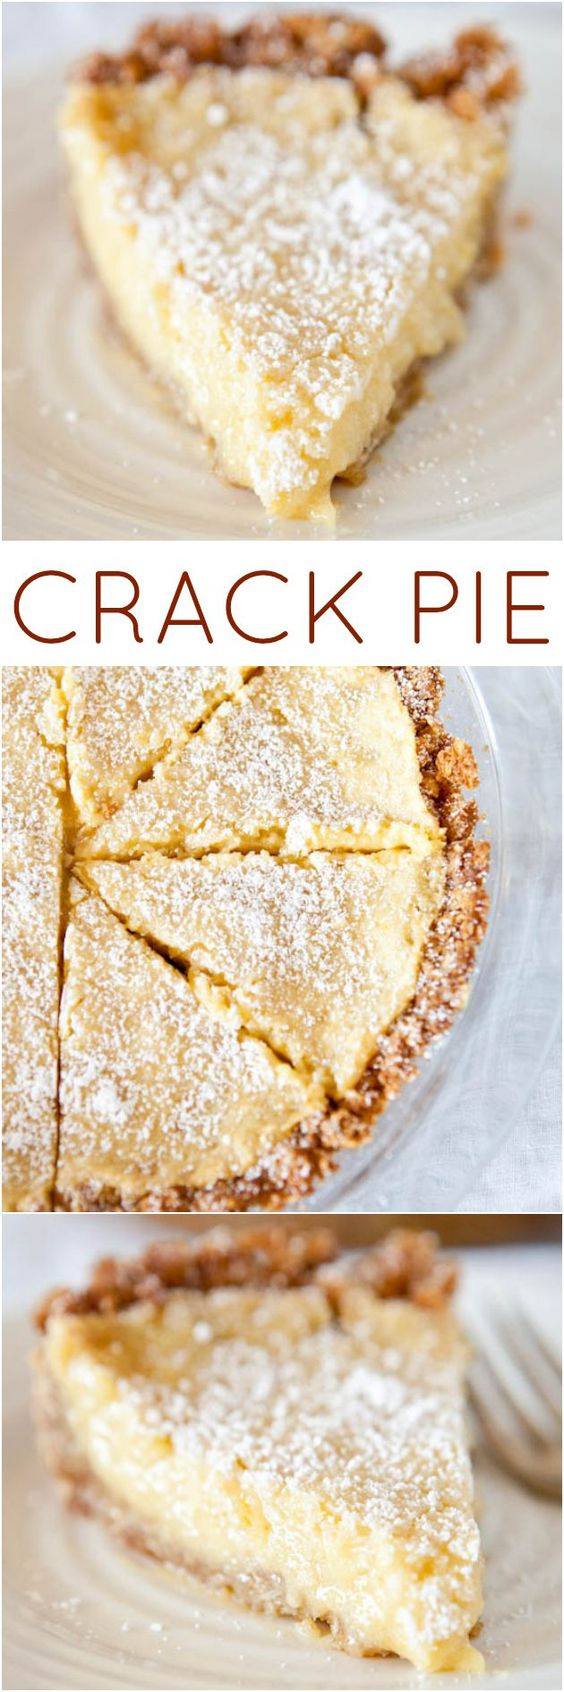 Crack Pie from the Momofoku Milkbar cookbook - There's a reason this pie has it's name. And it definitely lives up to the hype! (the pie sells for $44.00 at Momofoku's!)